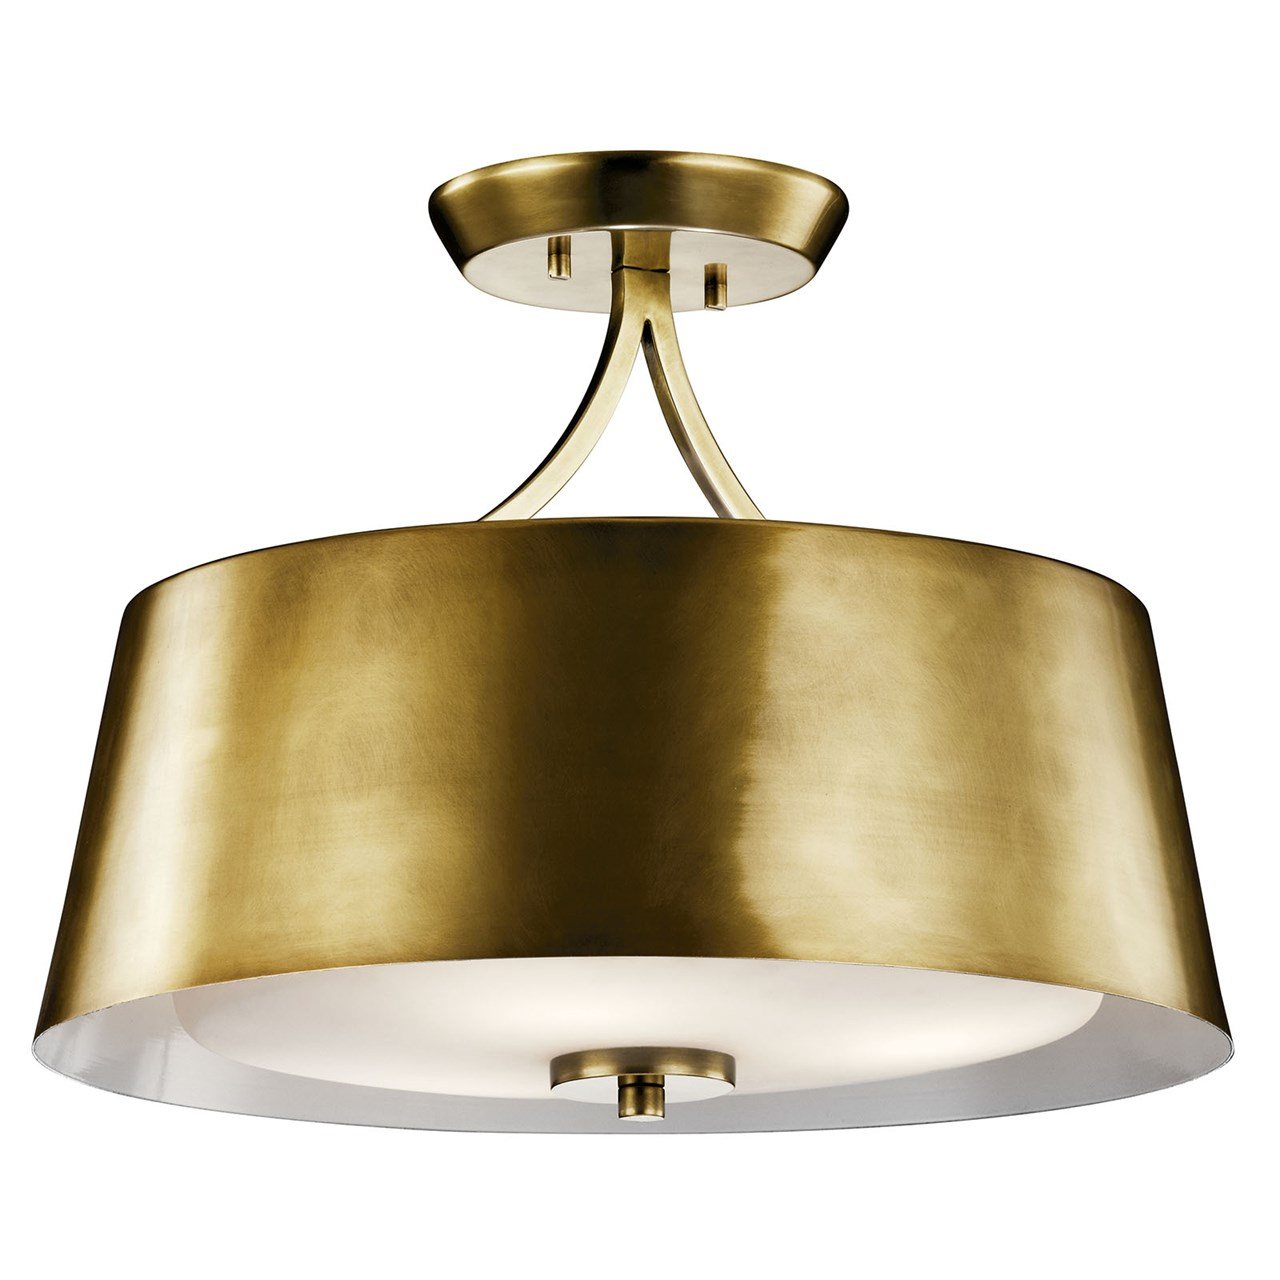 Maclain 3 Light Convertible Pendant Natural Bronze